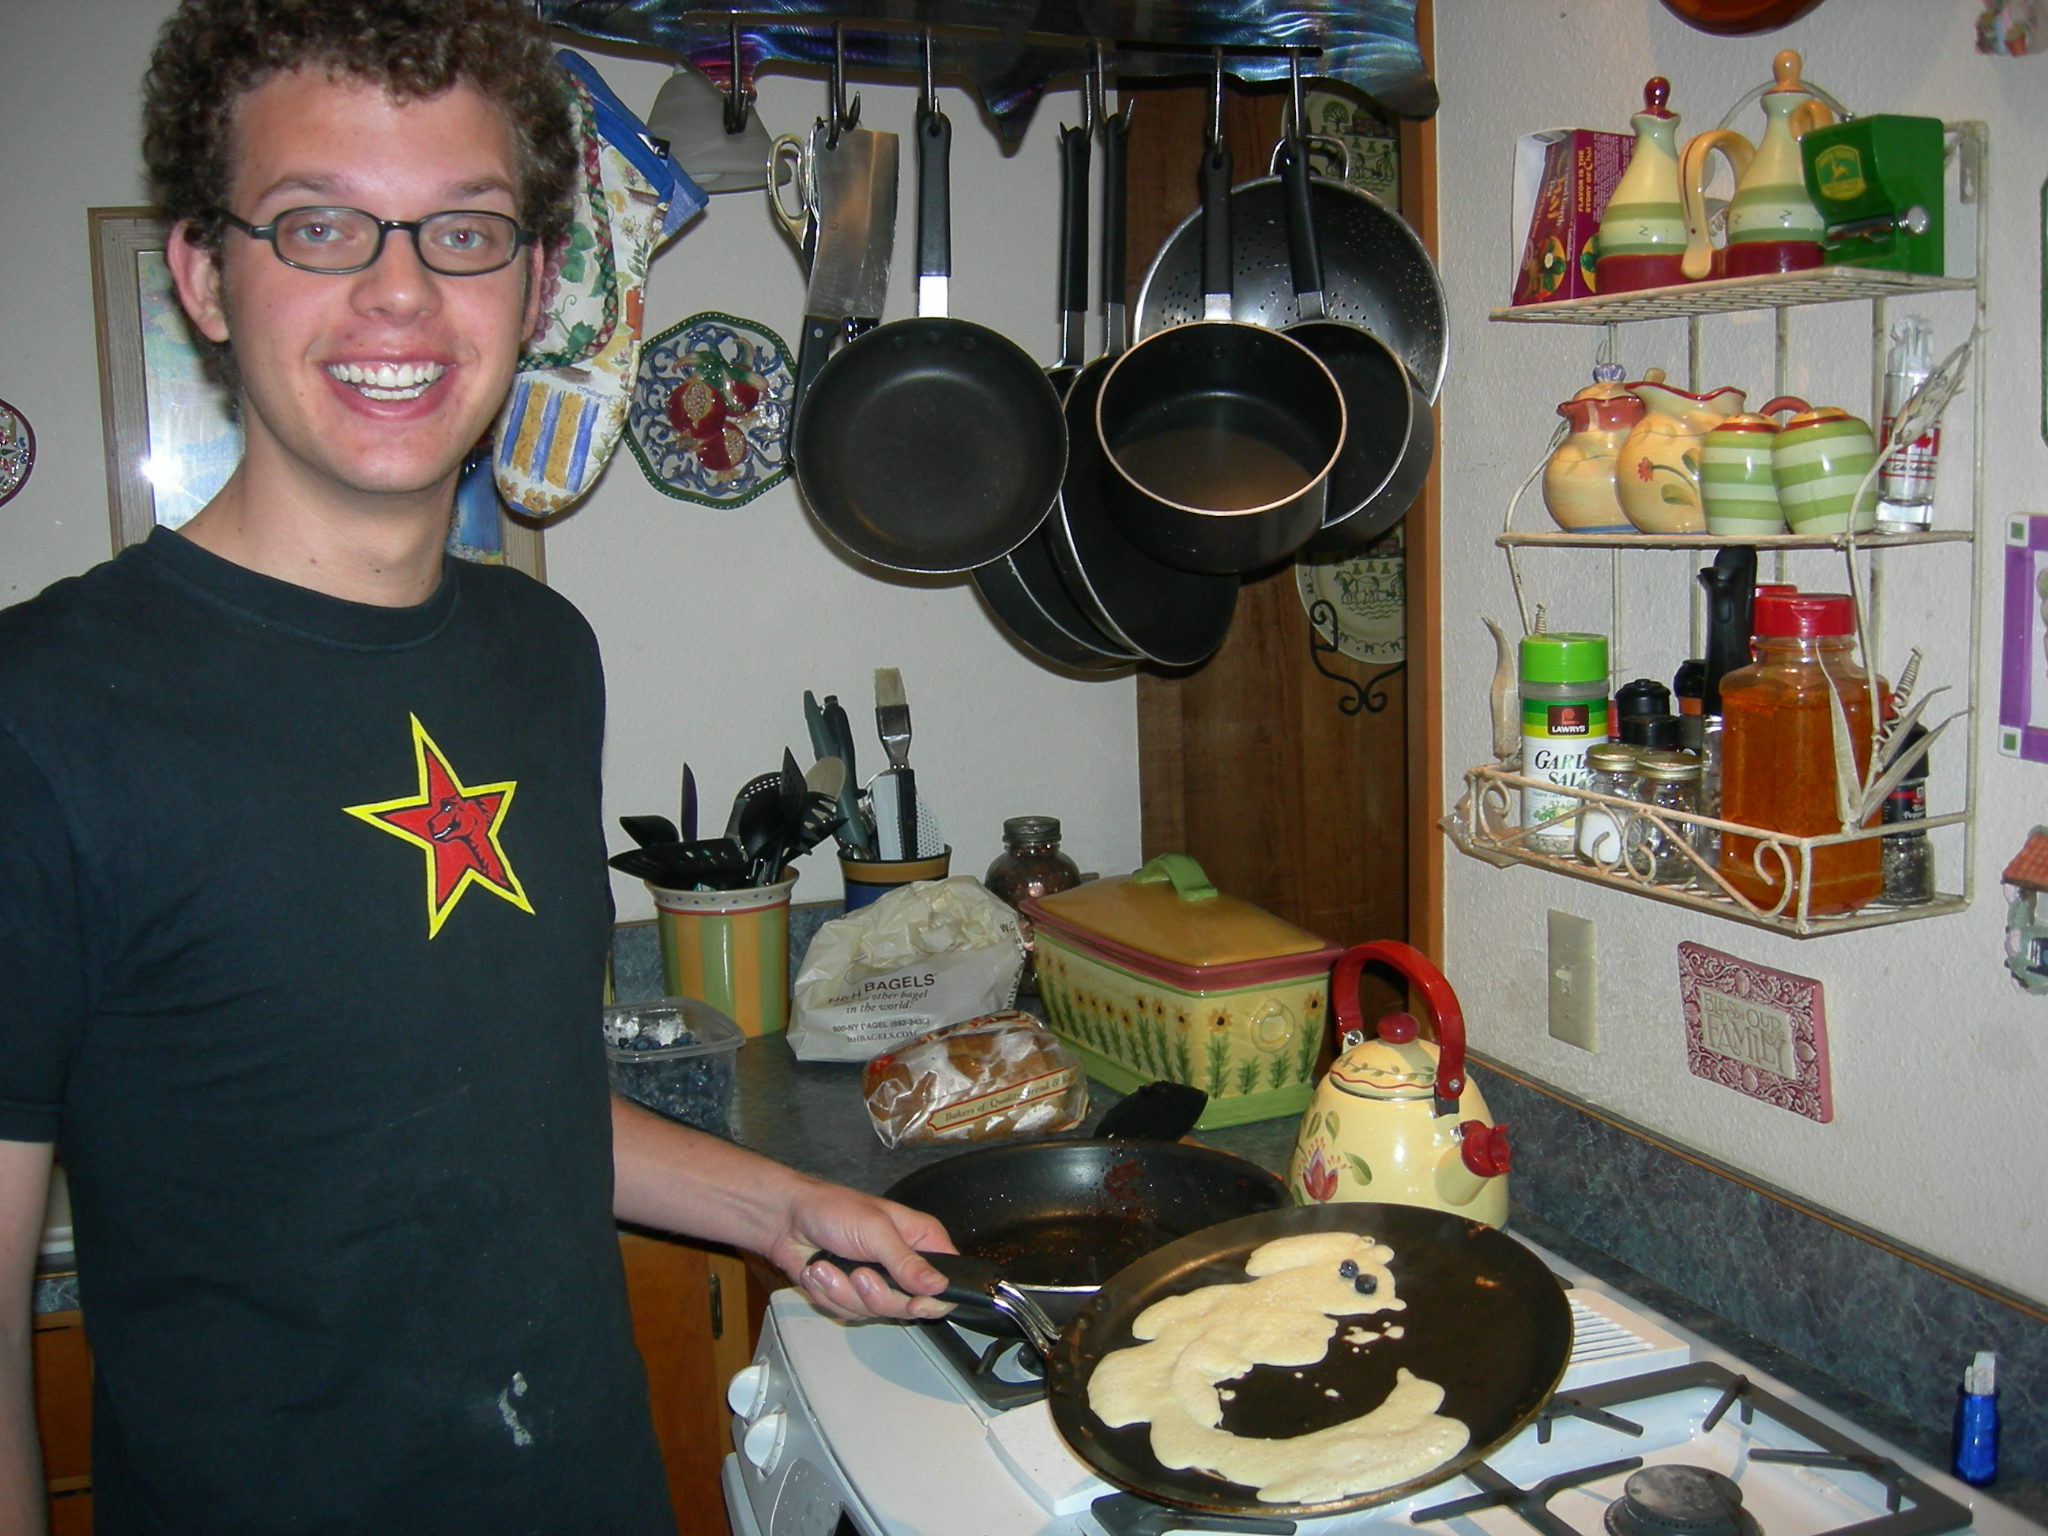 Firefox pancakes - the breakfast of champions